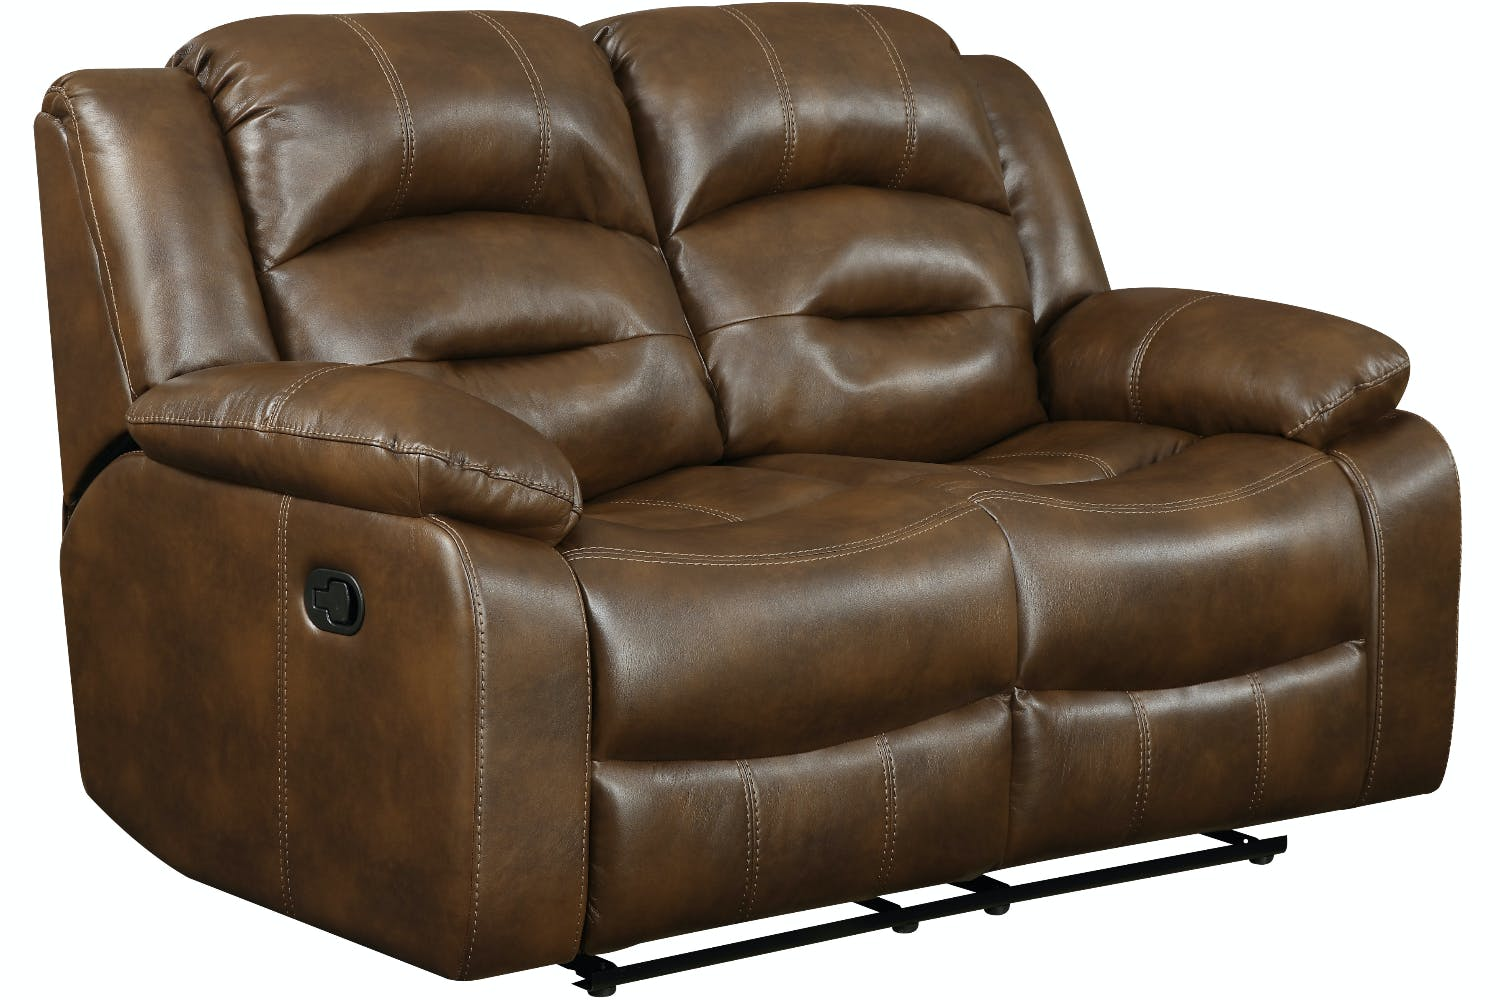 Hunter 2 seater sofa recliner tan harvey norman for Sofa 8 seater